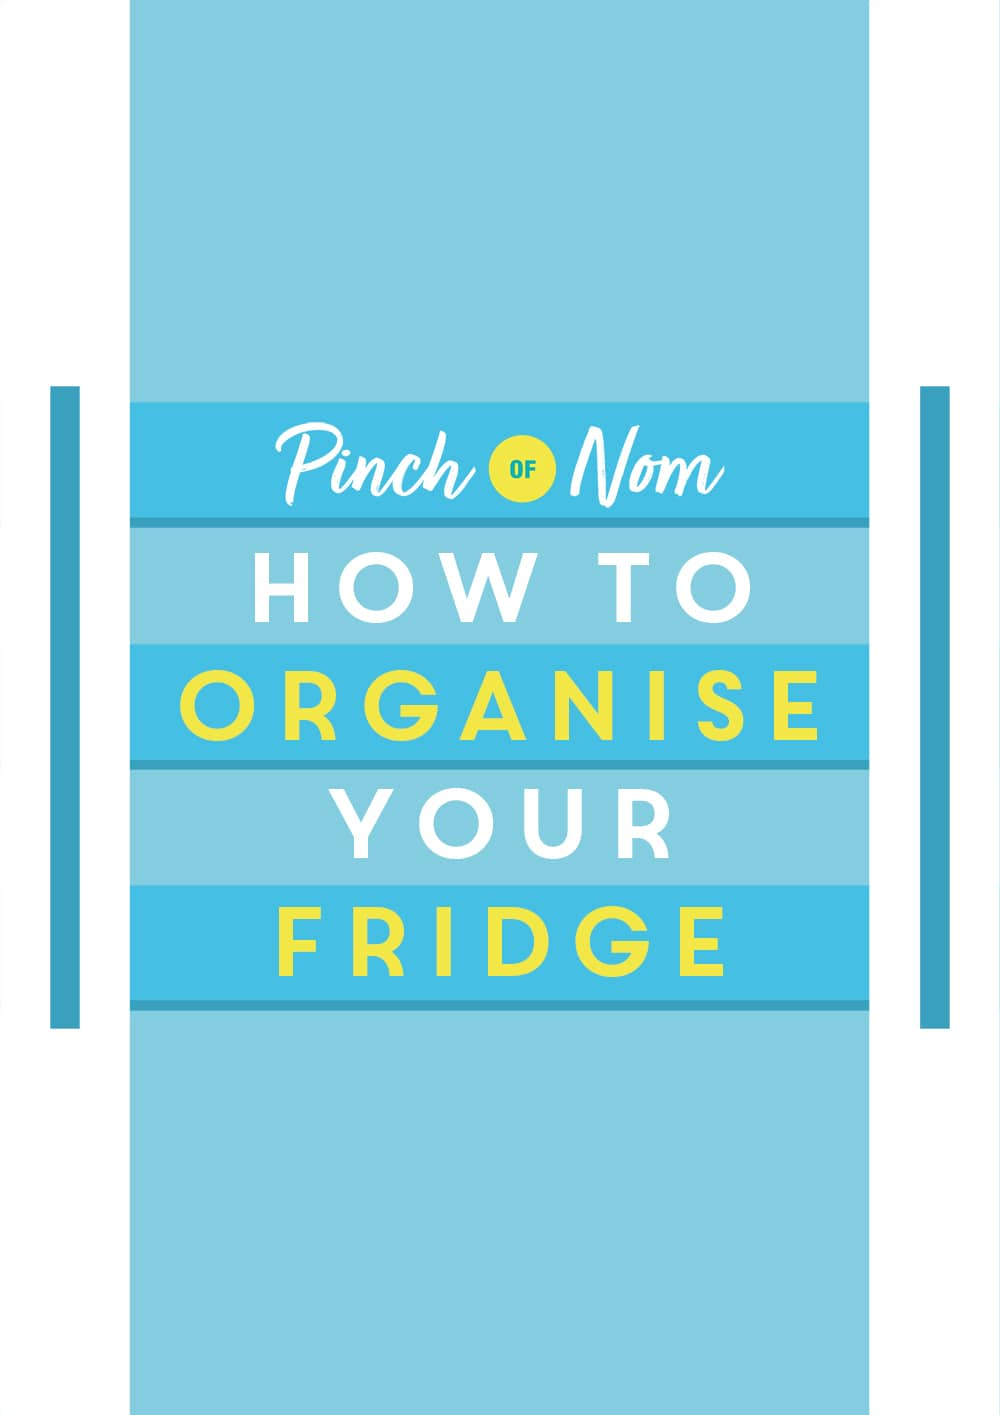 How to organise your fridge - Pinch of Nom Slimming Recipes